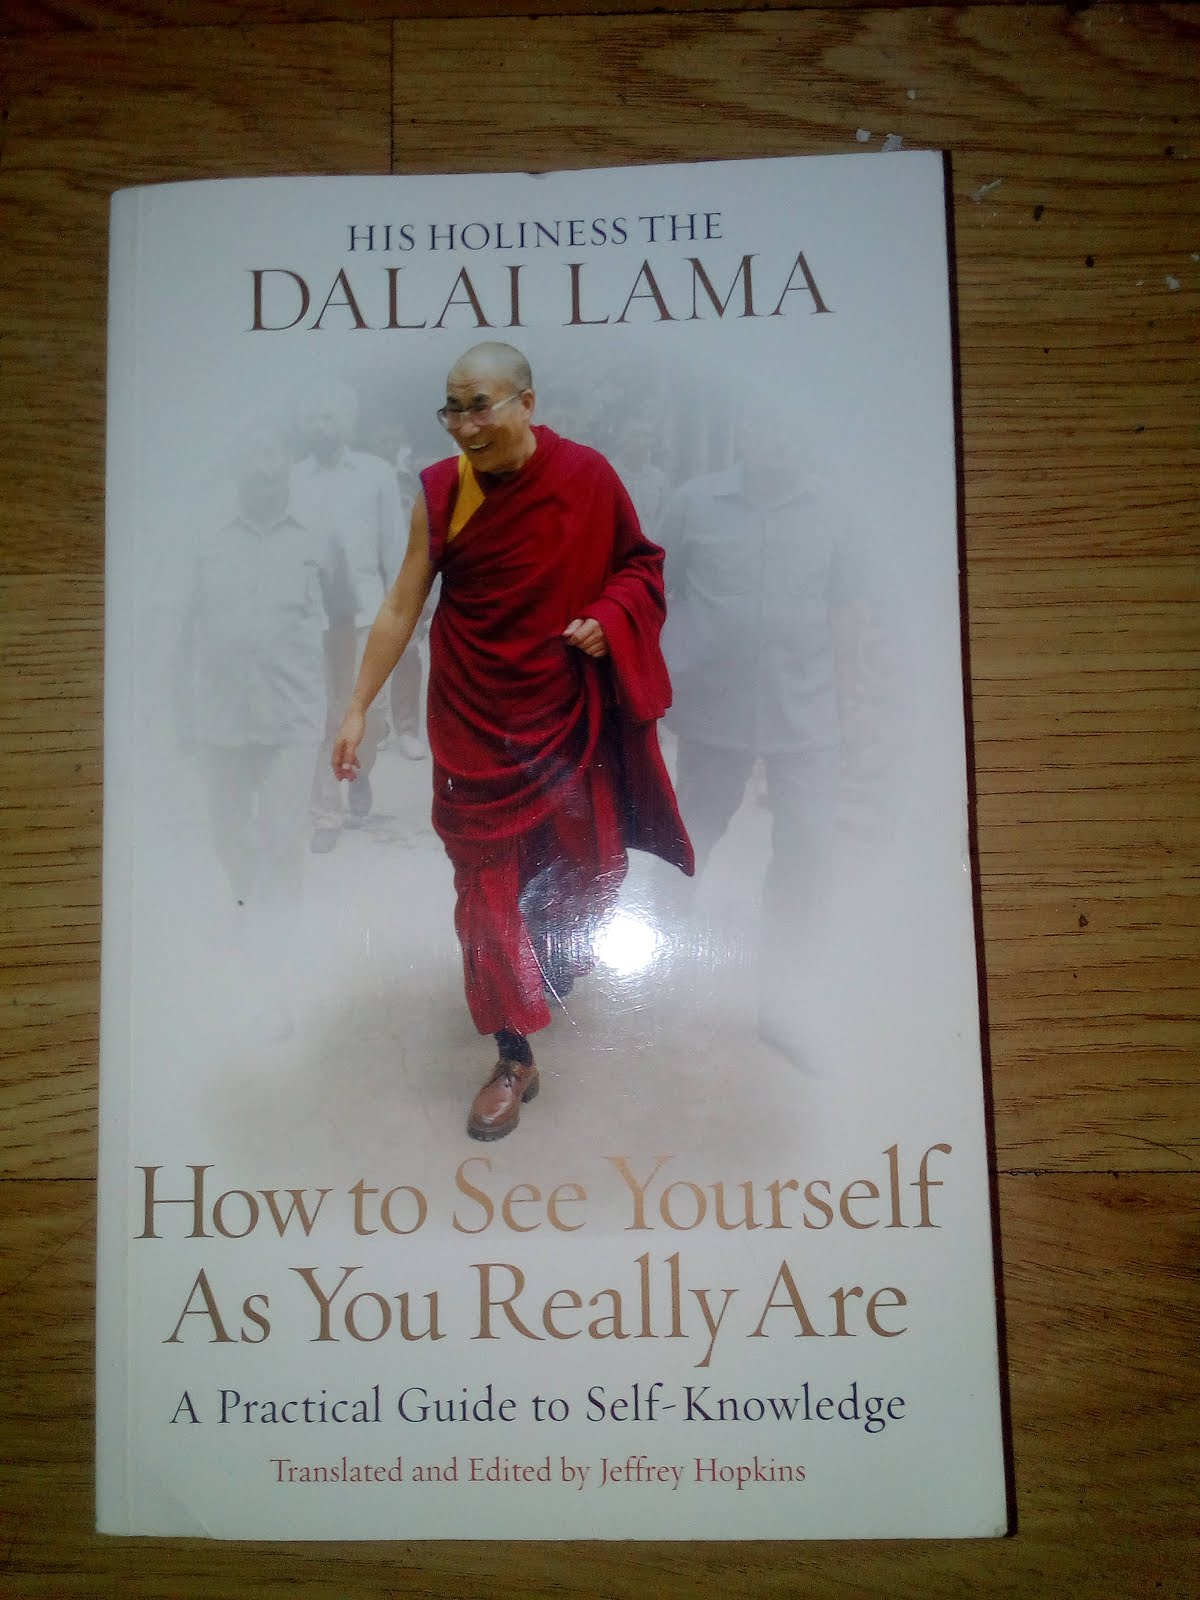 &#39;How to See Yurself As You Really Are&#39; by<br>His Holiness the Dalai Lama.